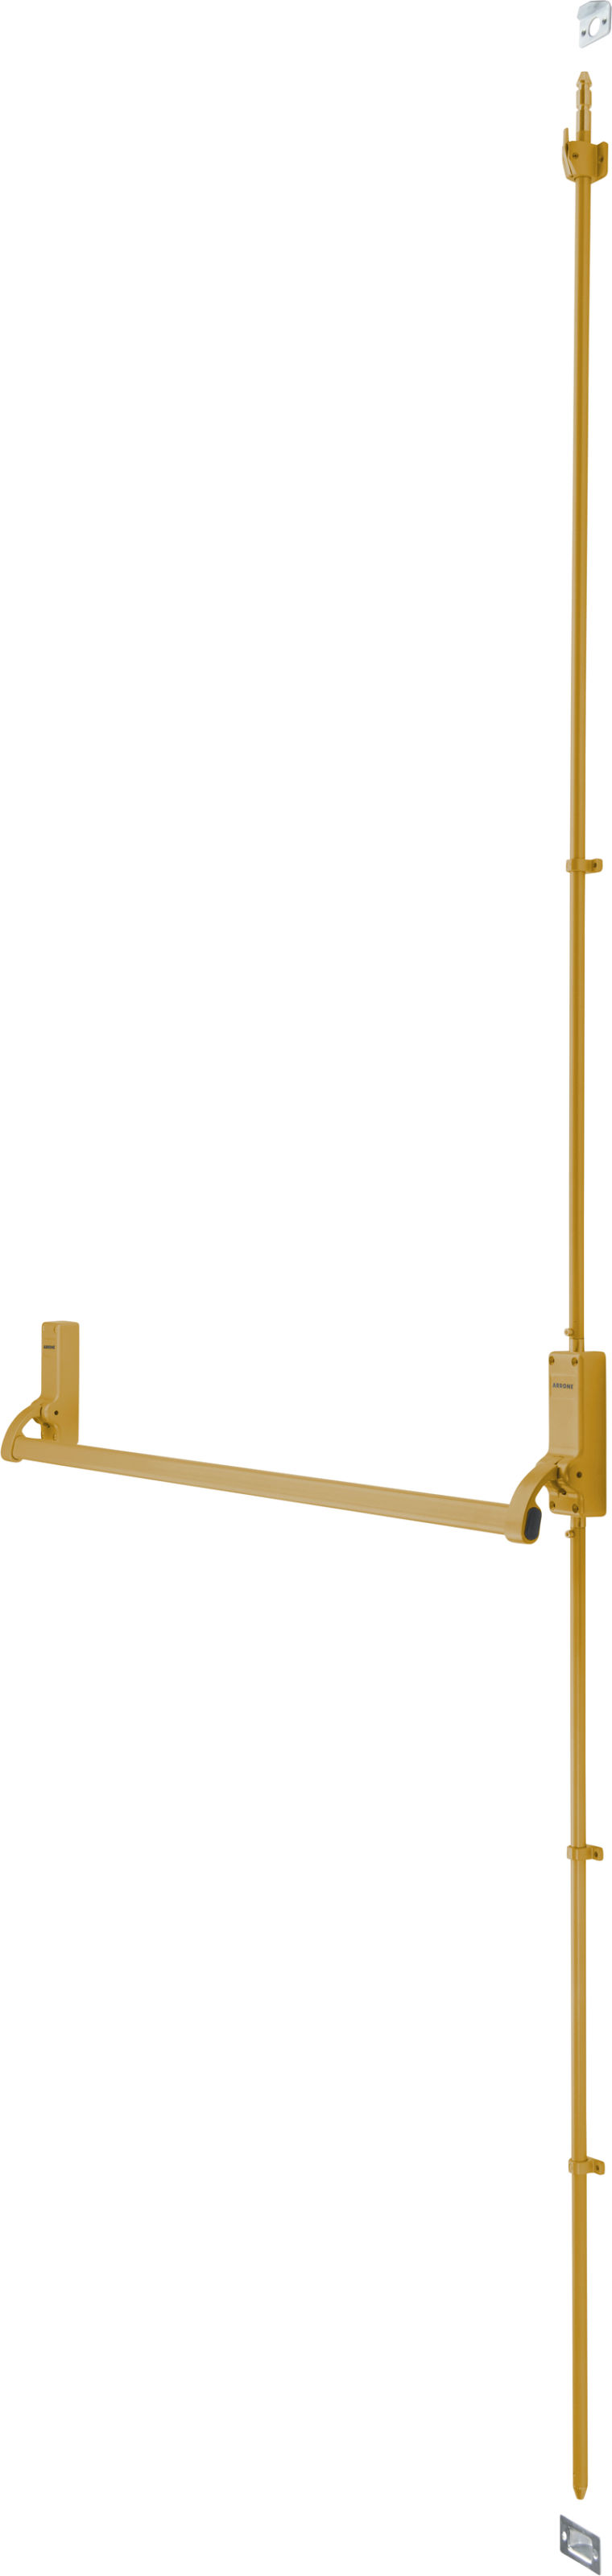 PANIC BOLT Gold for Single Exit Door up to 1000mm - Hoppe® AR880-GE